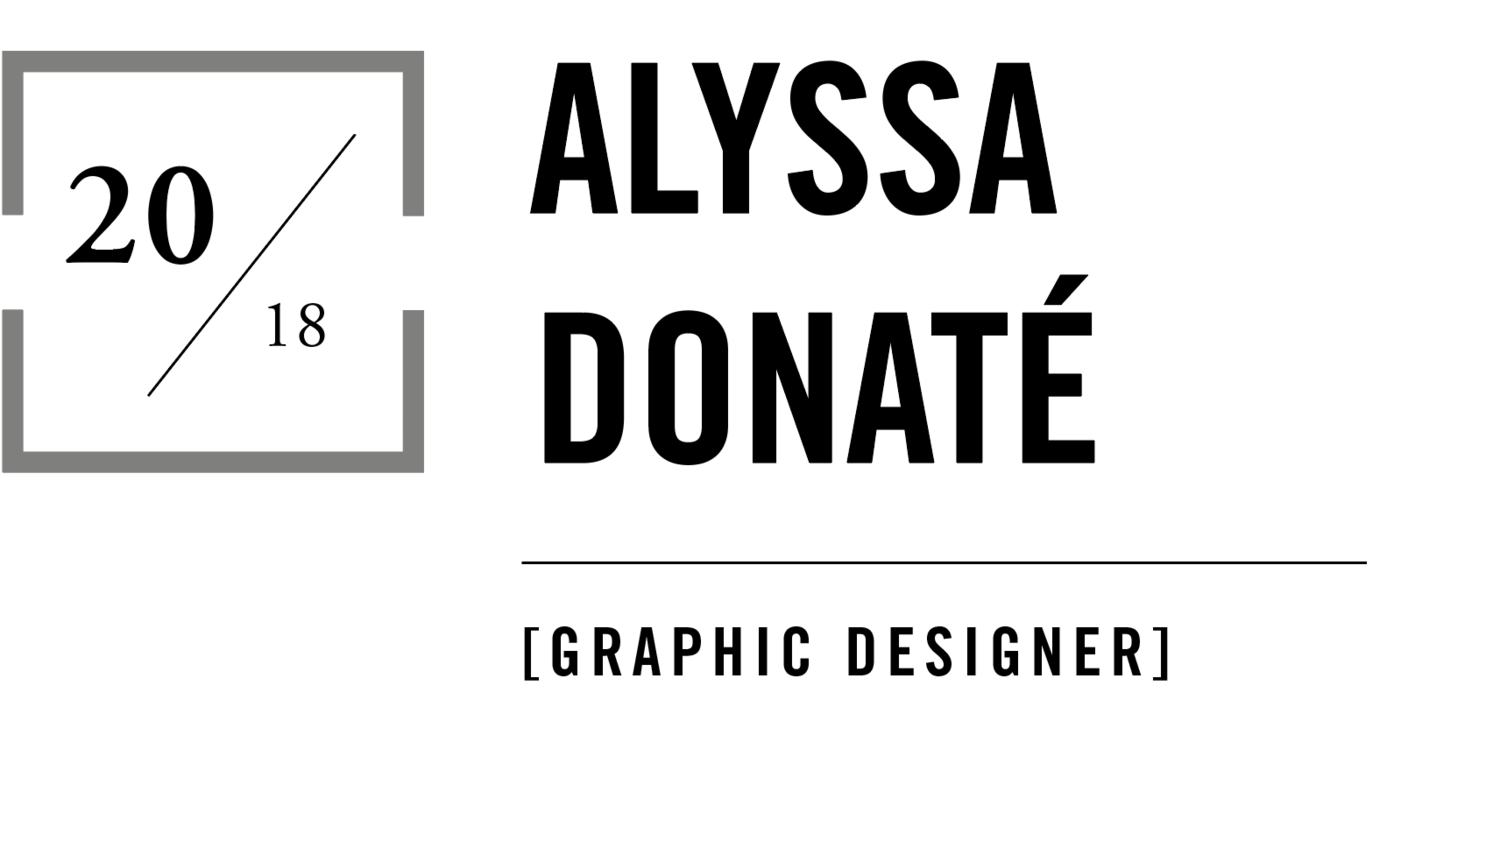 Alyssa Donate